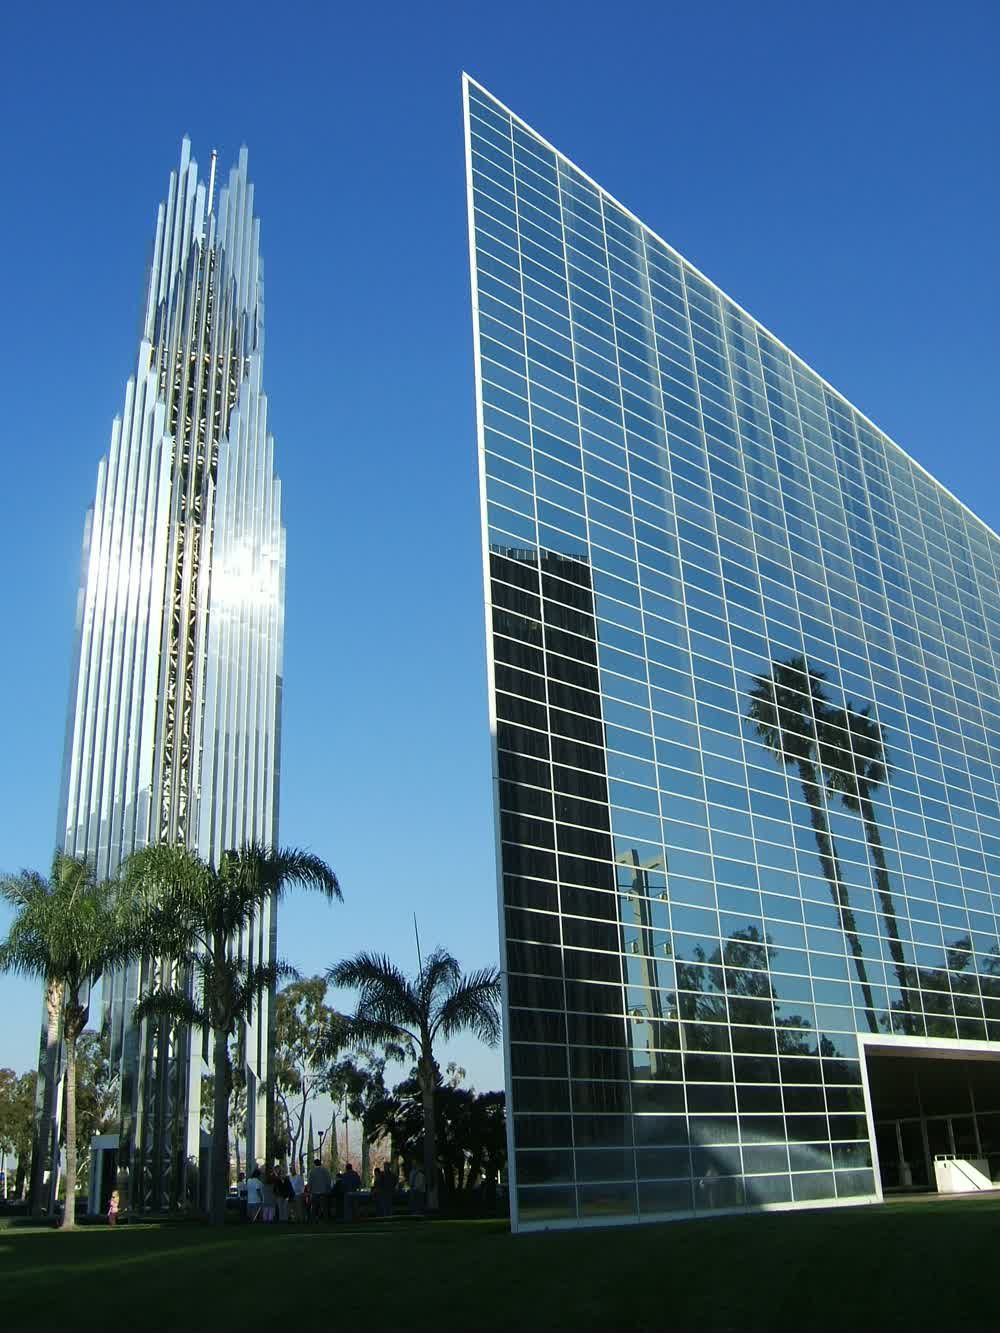 Architecture of Crystal Cathedral